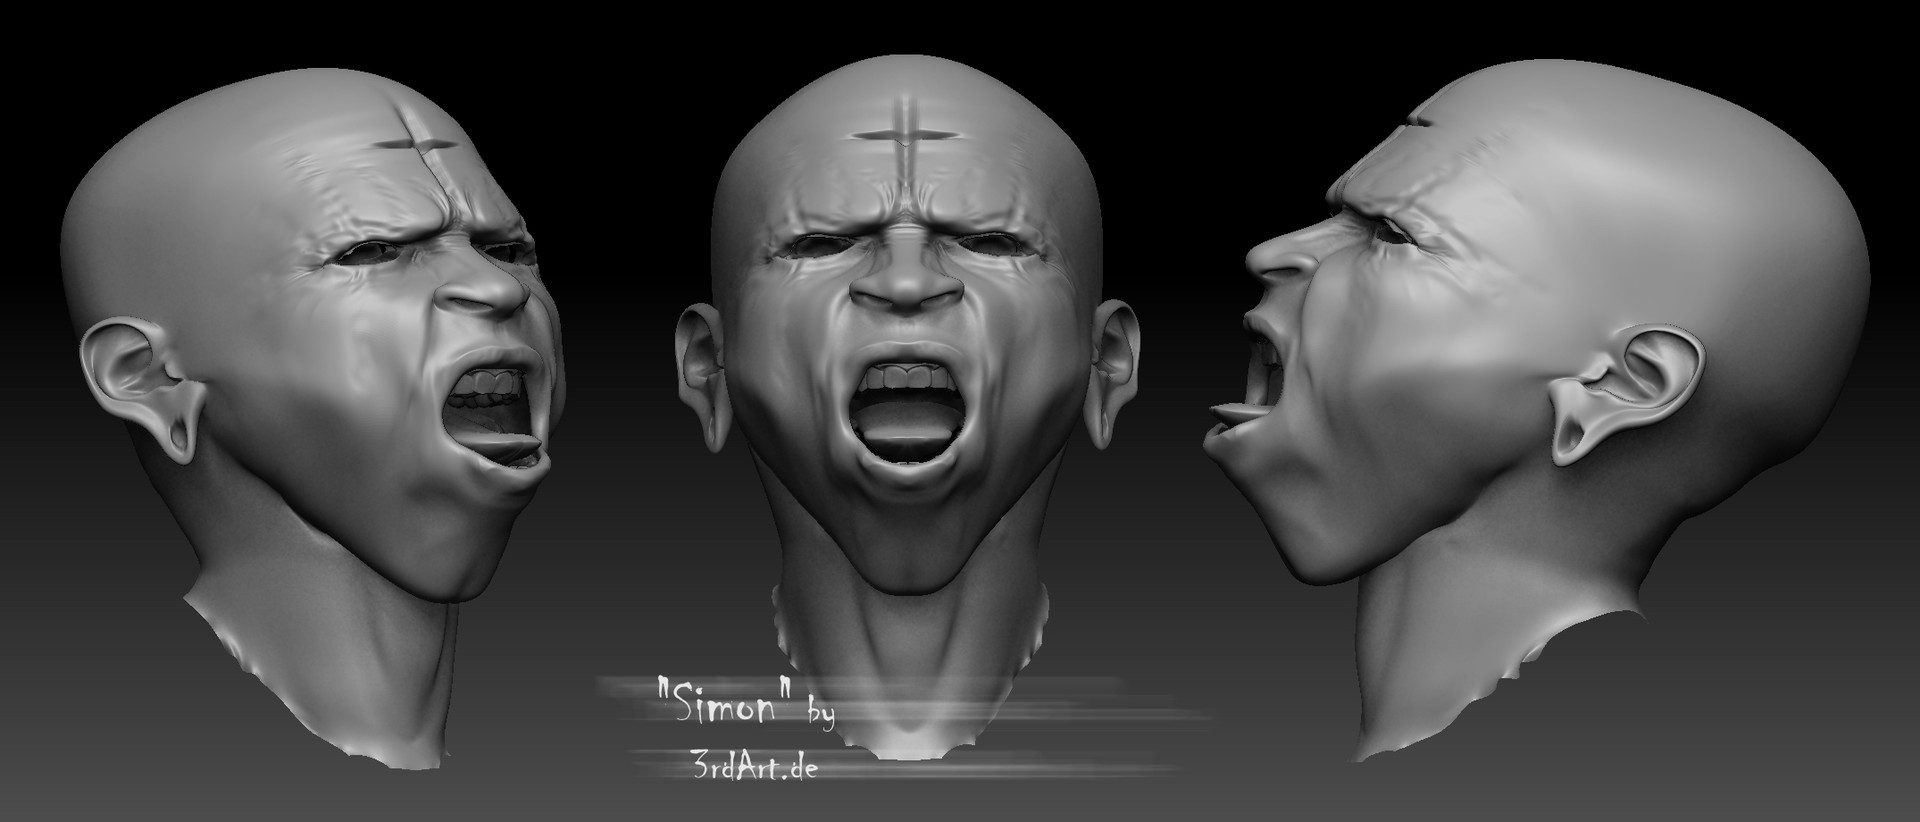 Zbrush sculpt for this project